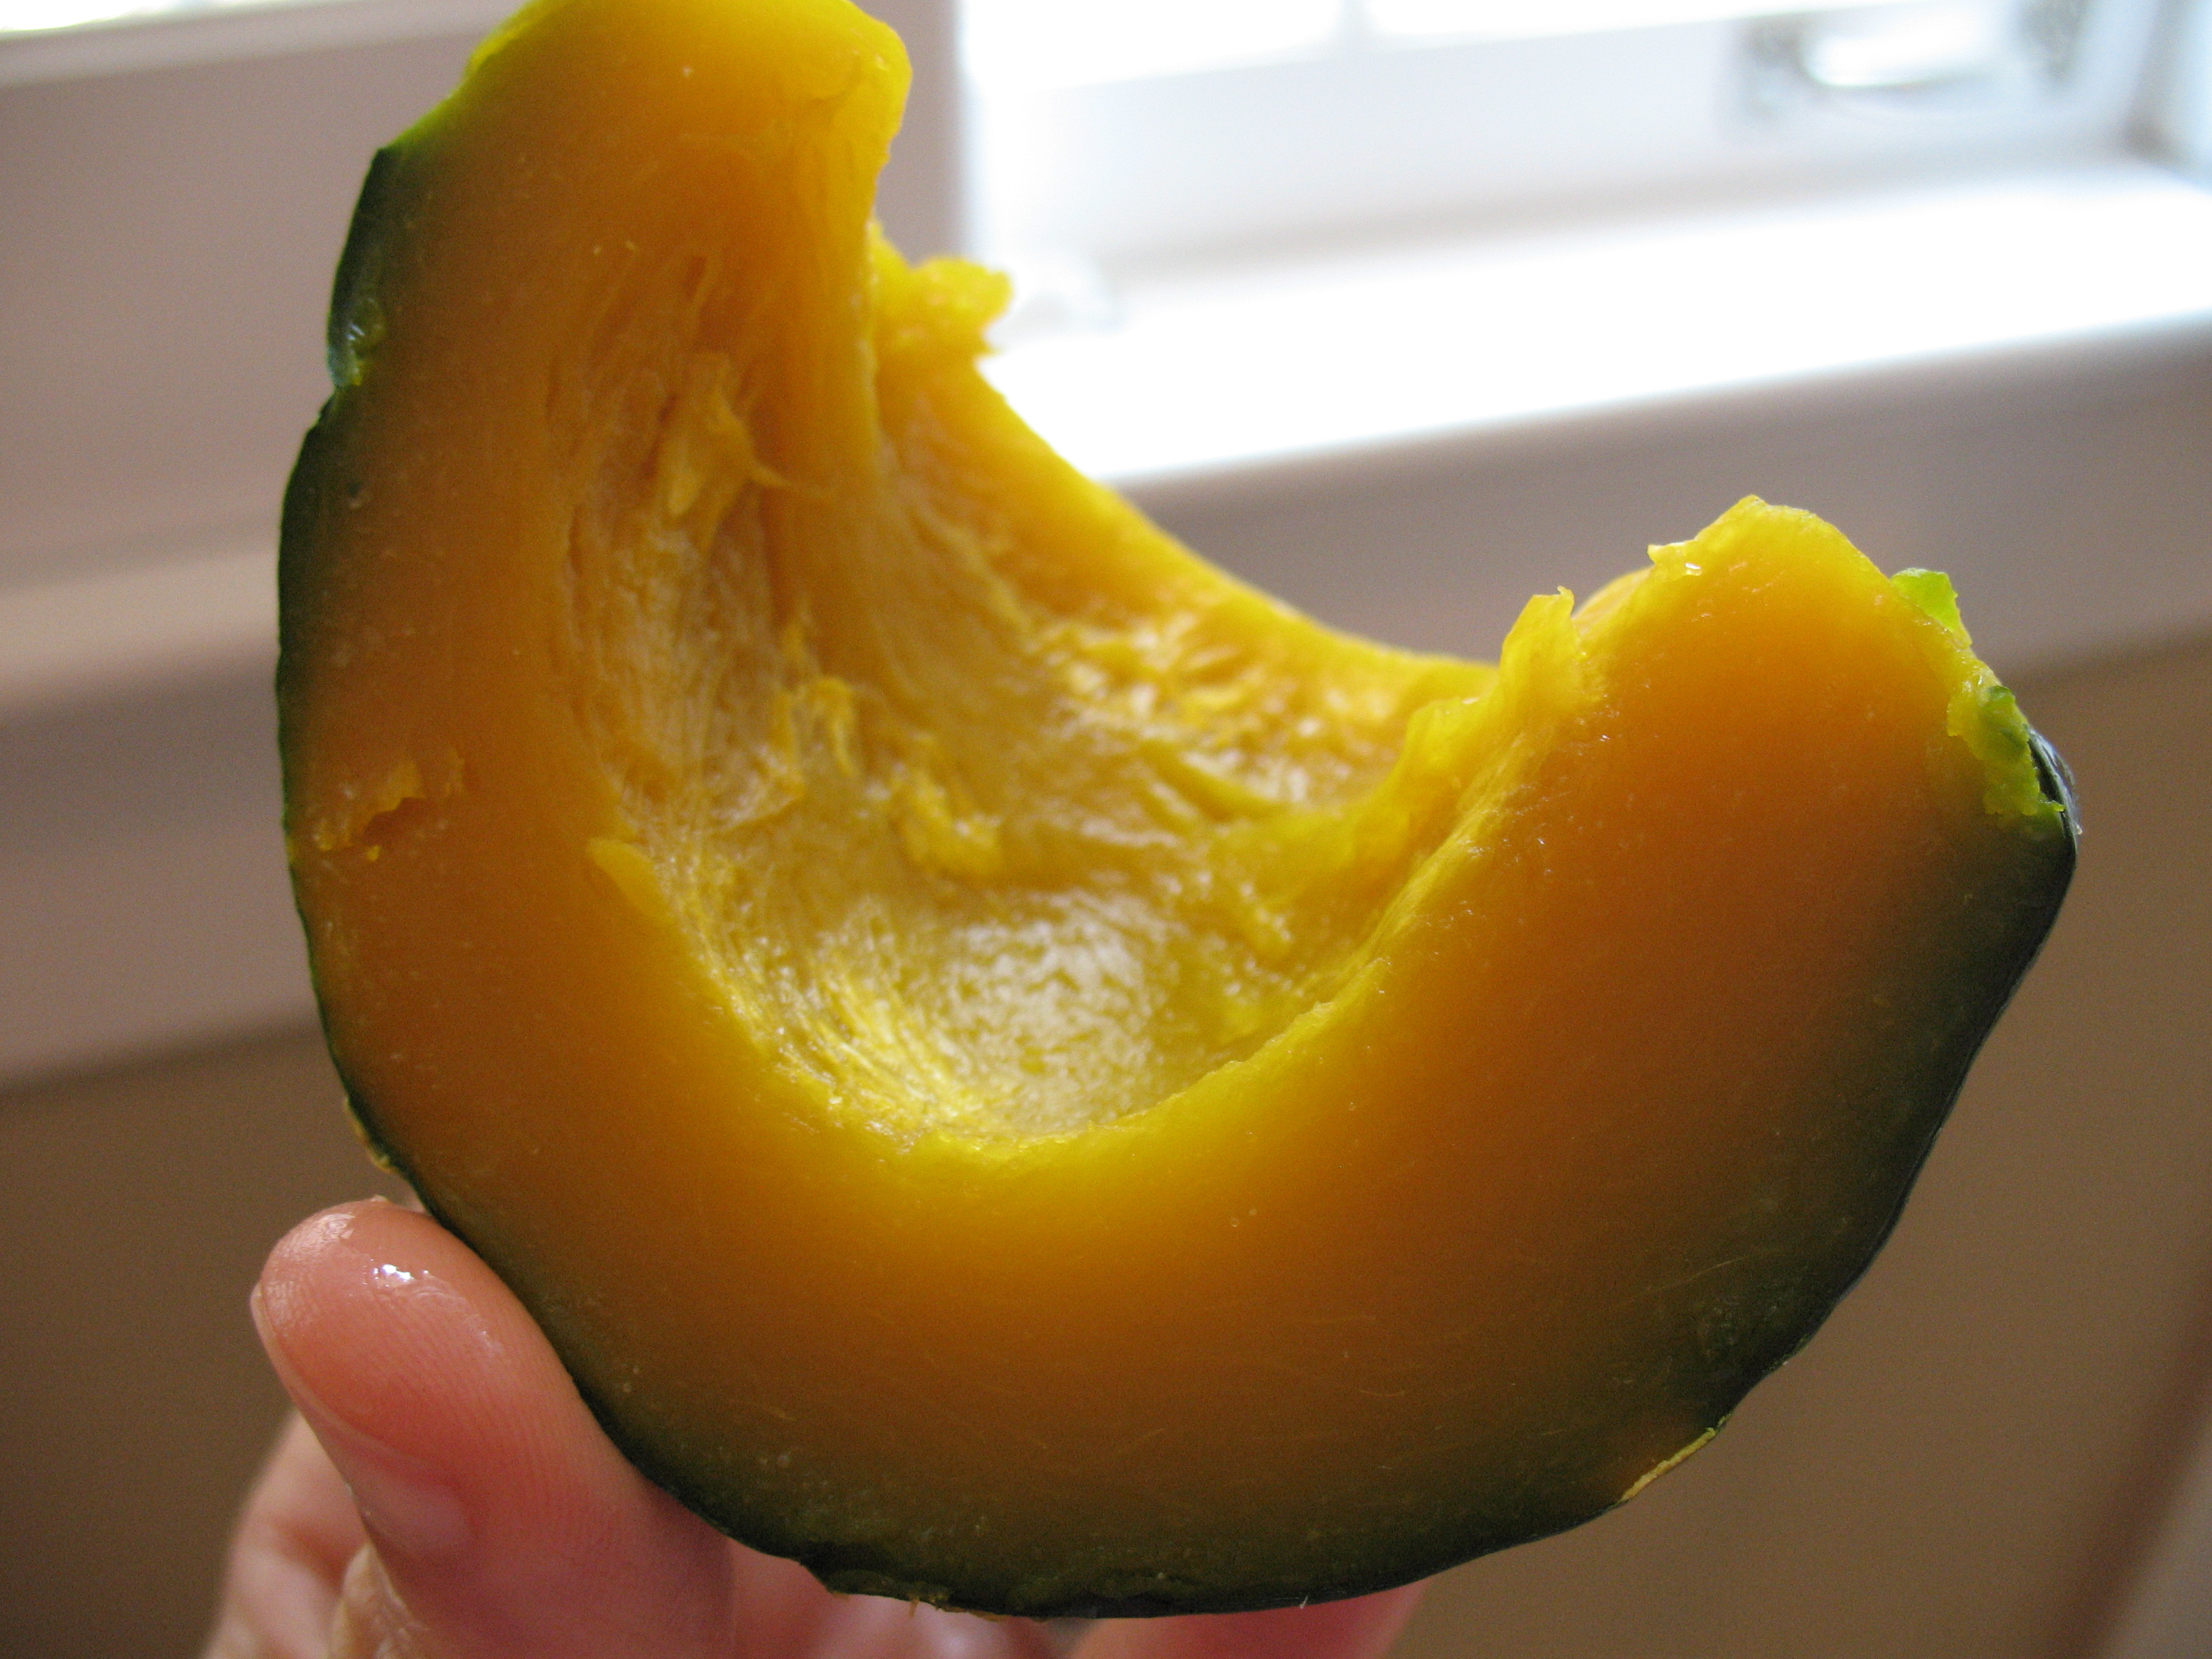 Kabocha - have you tried it yet? If not, get on that!